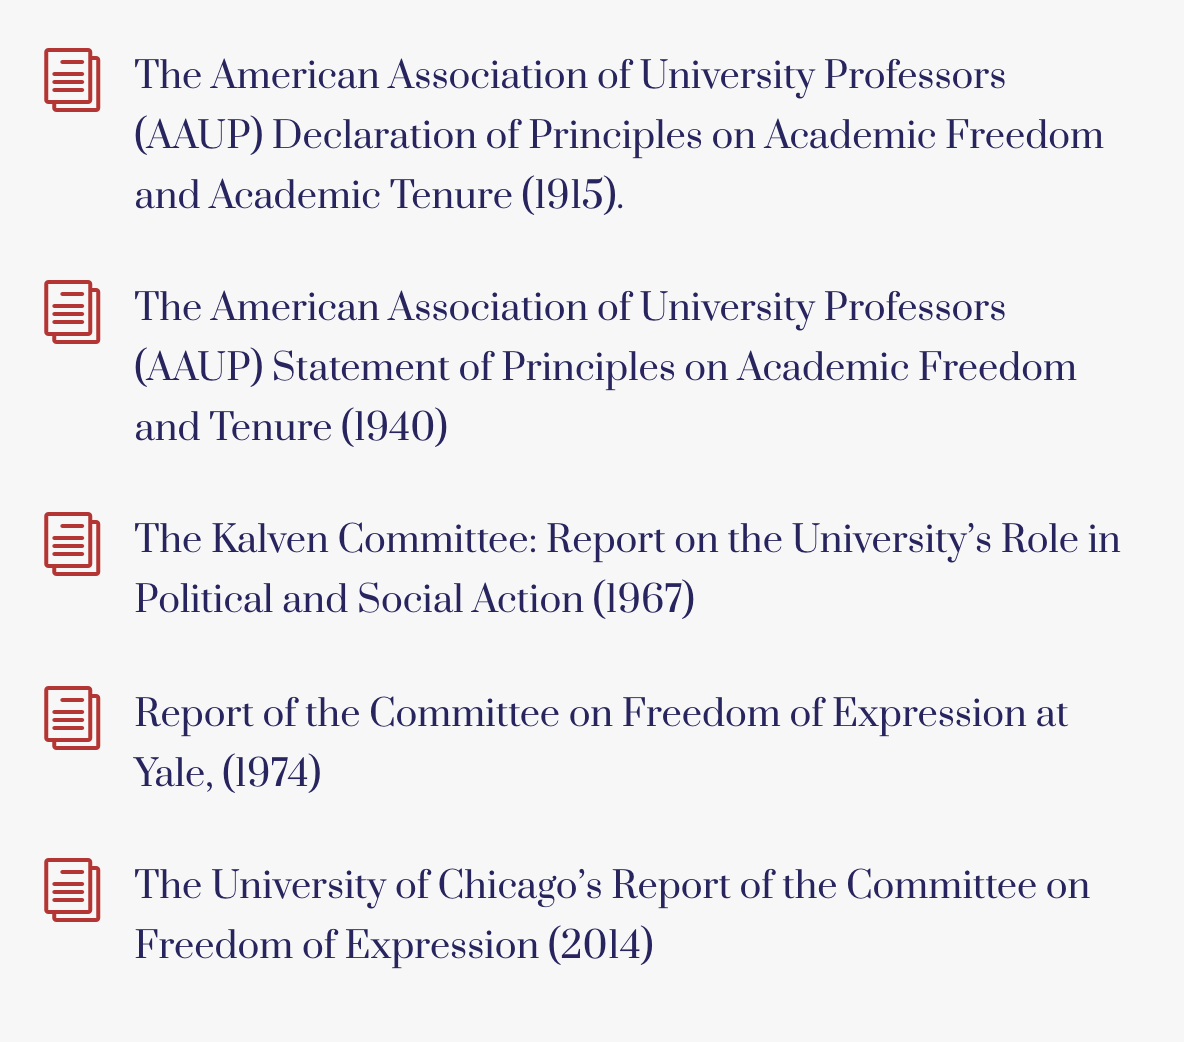 A new and powerful organization to preserve freedom of expression in universities